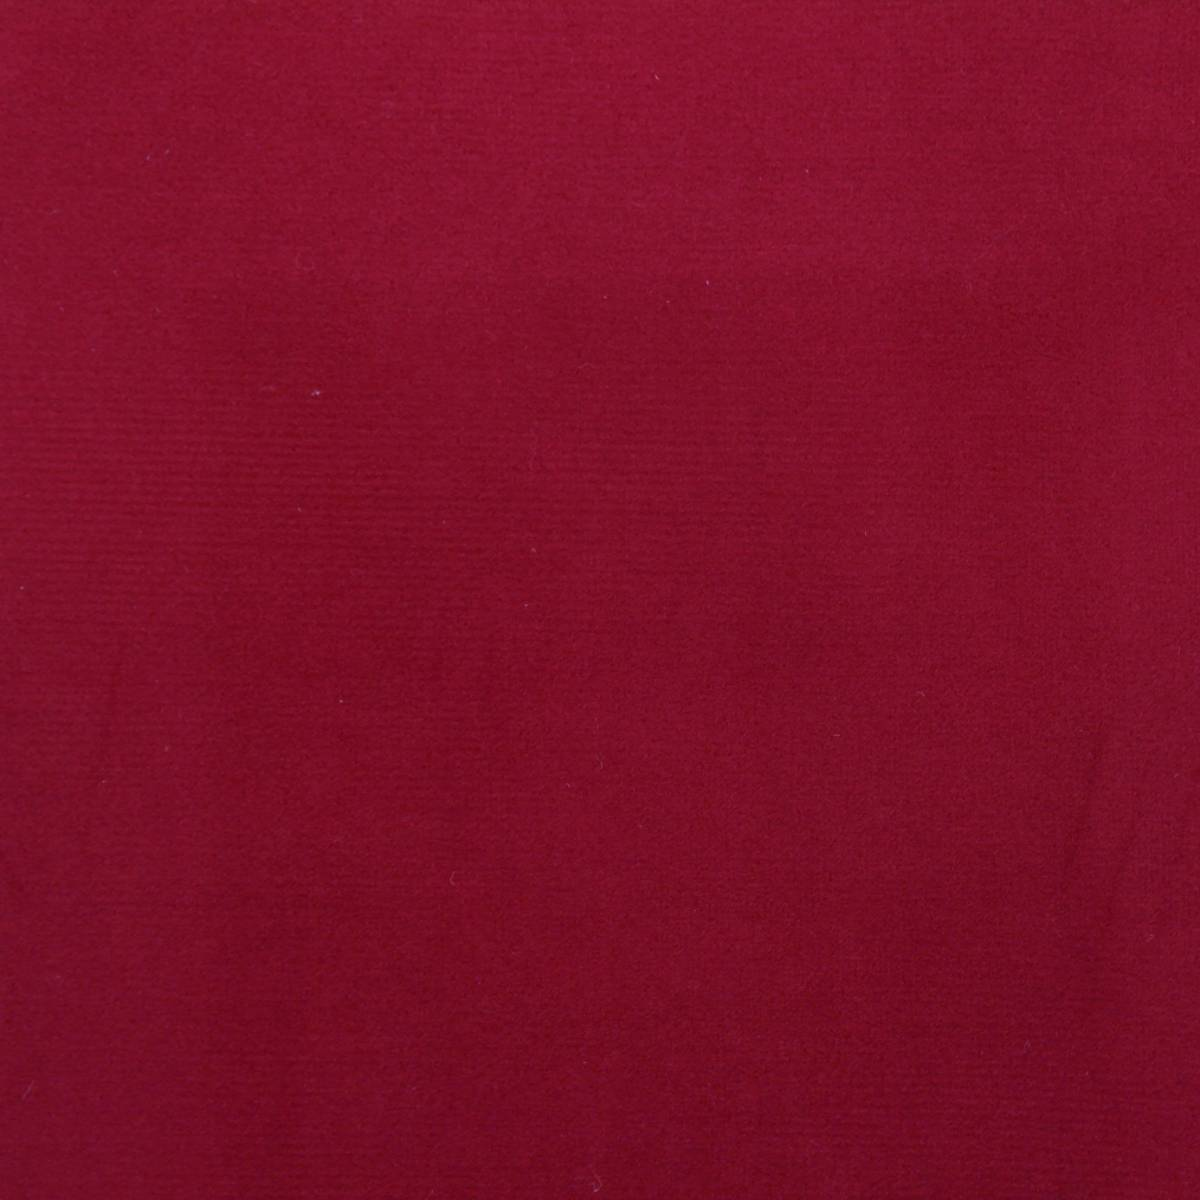 Roman Blinds In Plush Velvet Fabric Shiraz Plushvshiraz